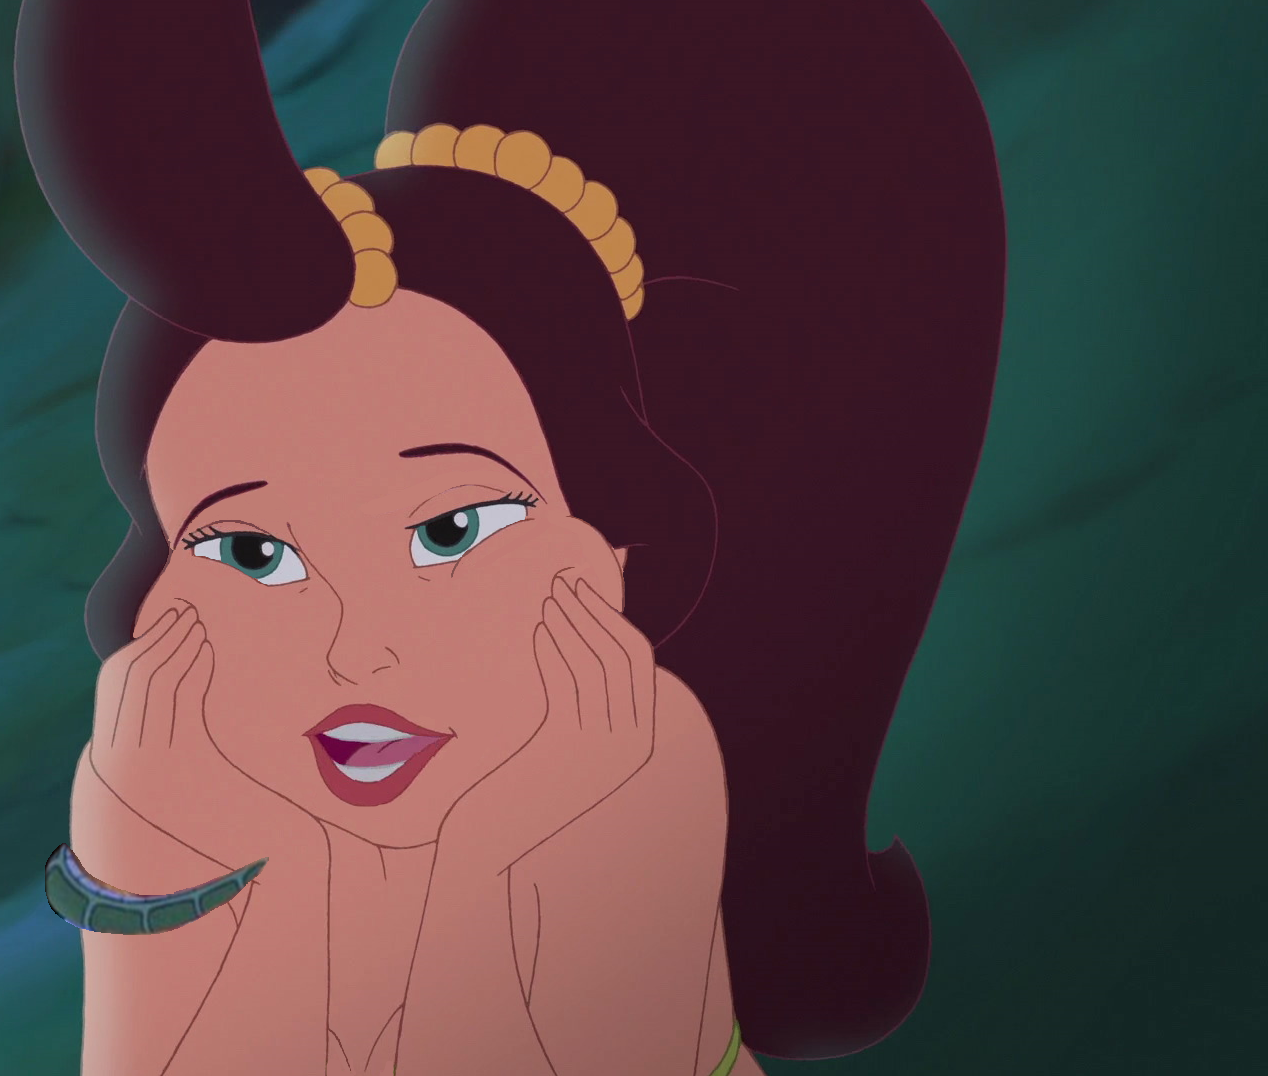 Squishy Face : squish face: Little Mermaid squishy face updated july 25